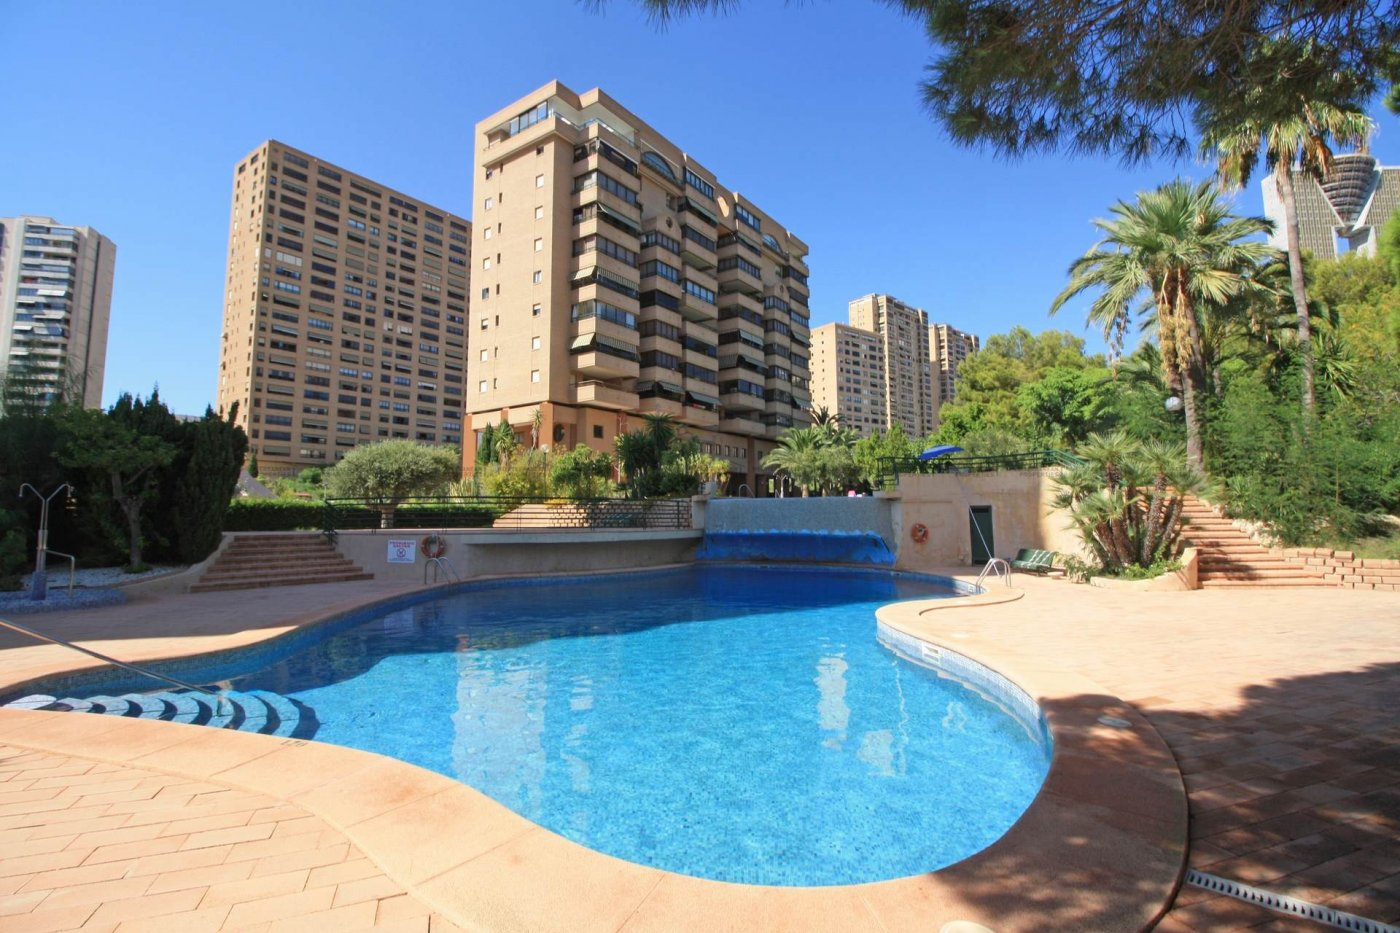 Apartment for sale in Poniente, Benidorm